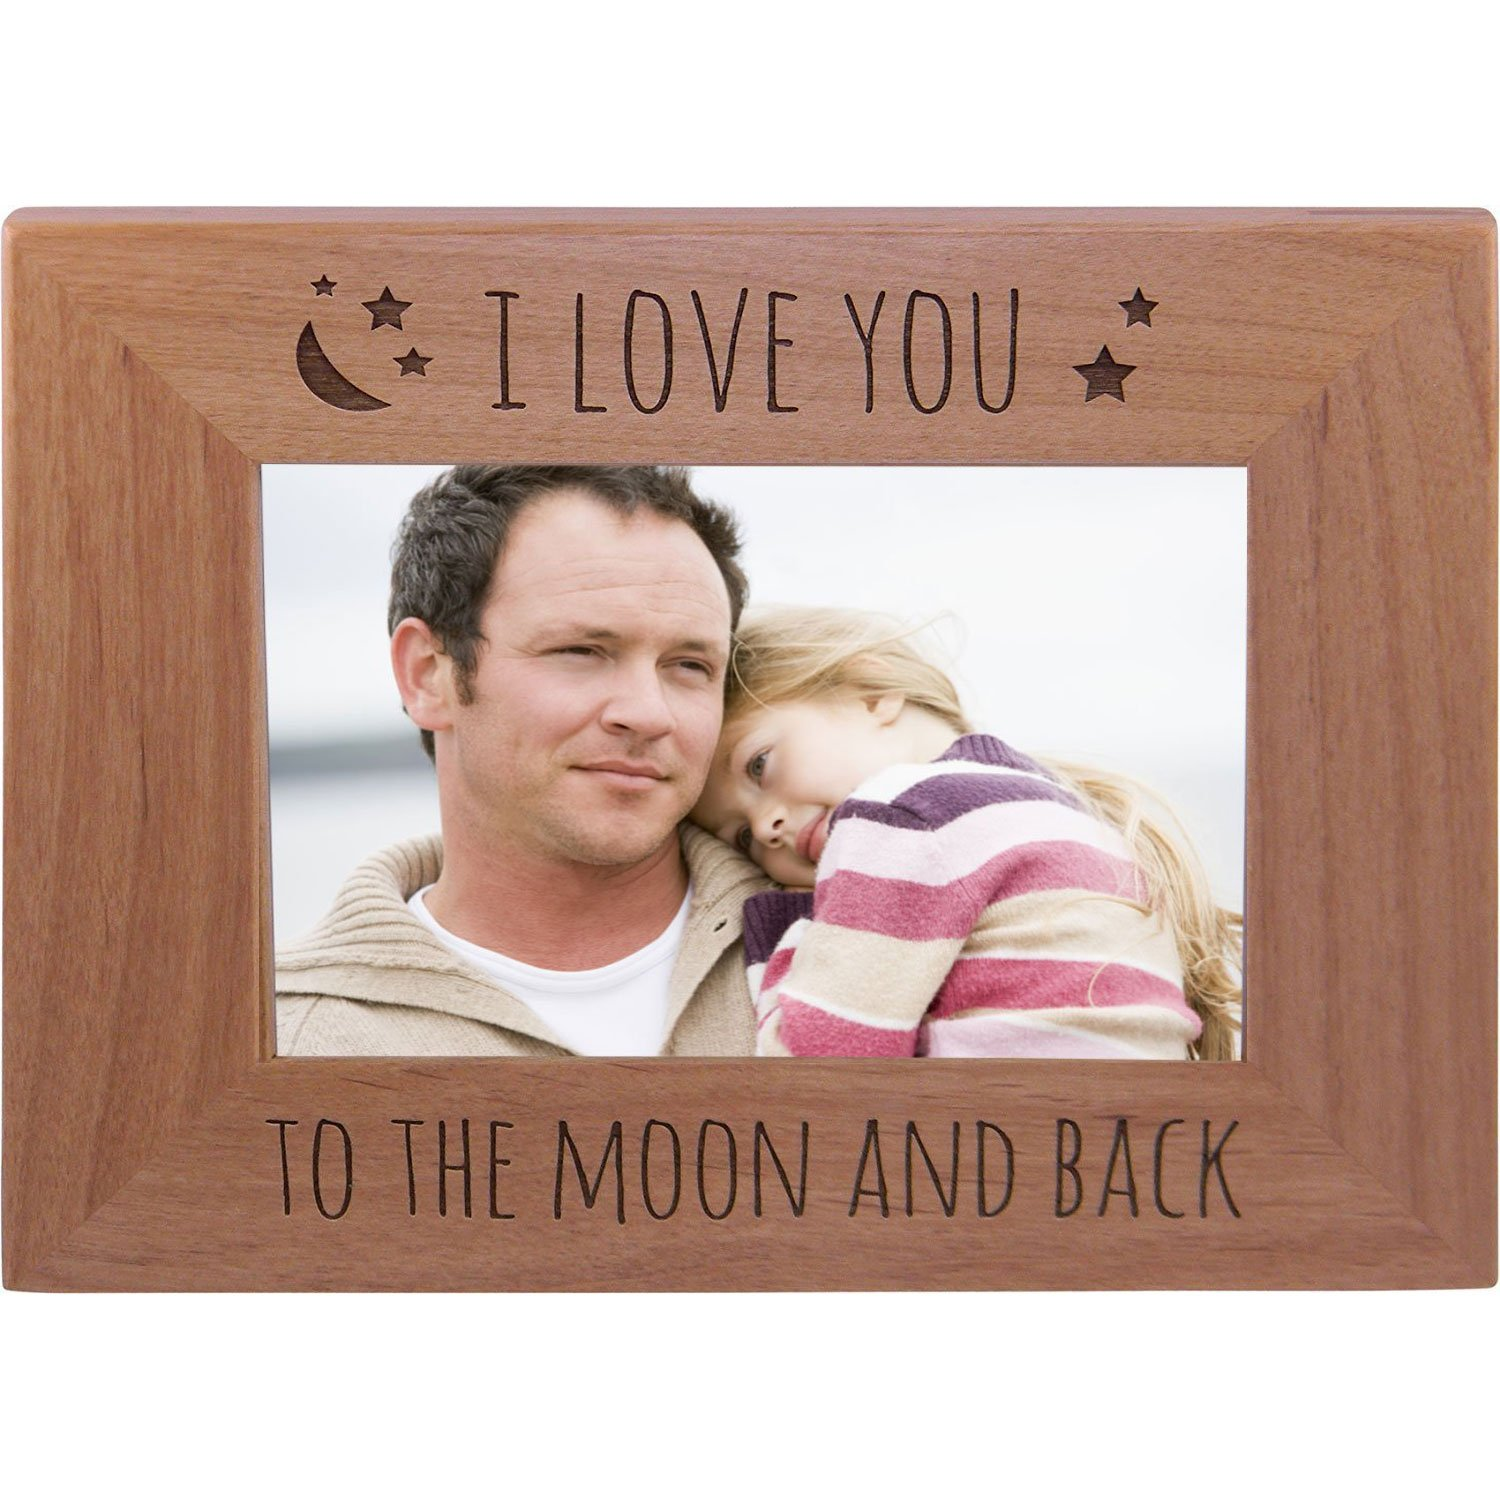 CustomGiftsNow I Love You To The Moon And Back - Wood Picture Frame Holds 4x6 Inch Photo - Great Gift for Mothers's, Father's Day, Birthday,Valentines Day, Anniversary or